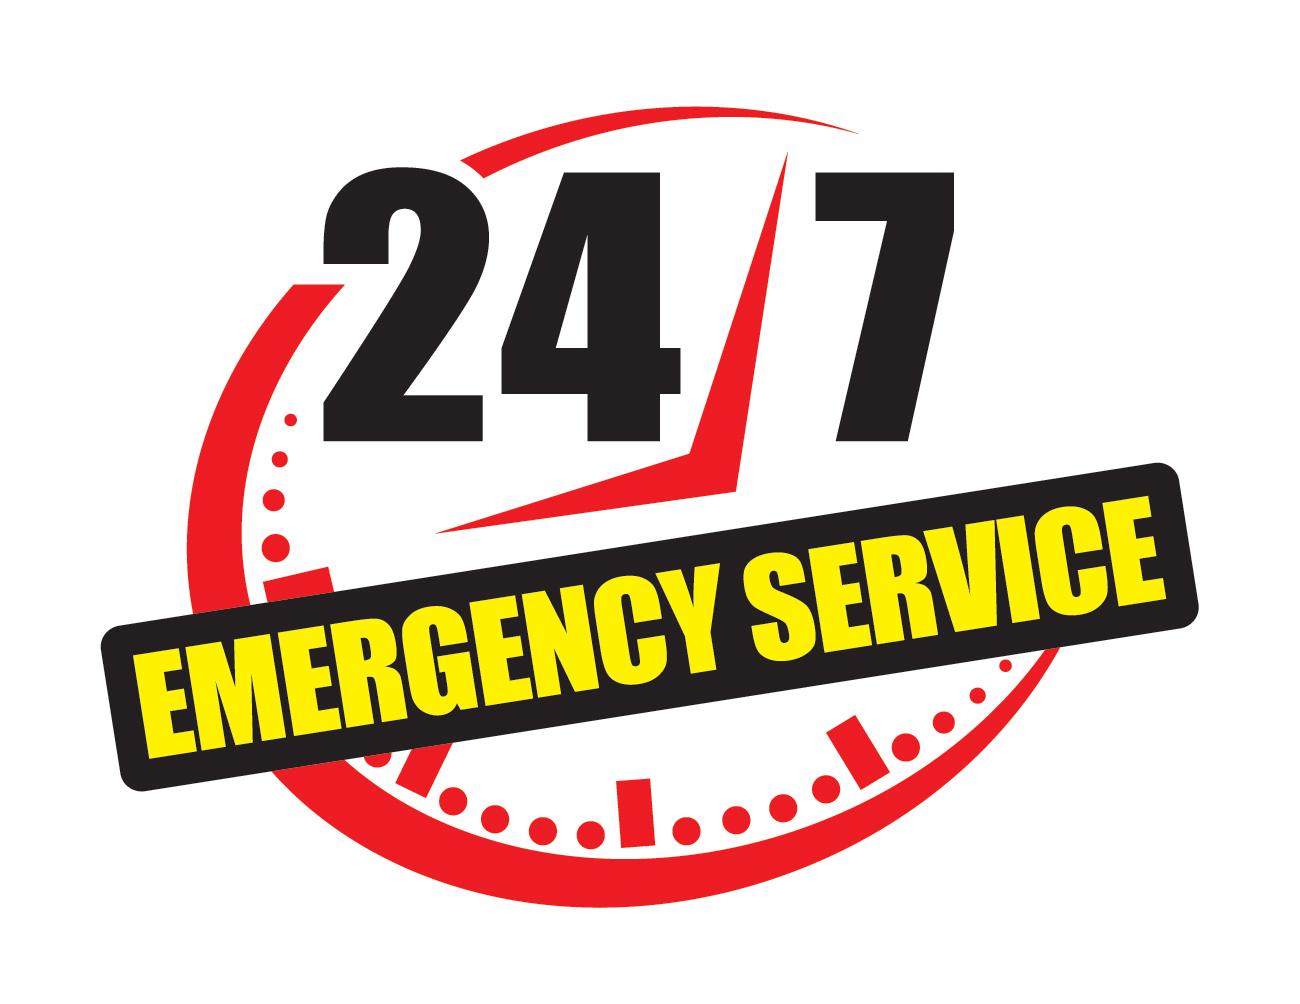 24 Hour Tow Service By Tow Recover Assist